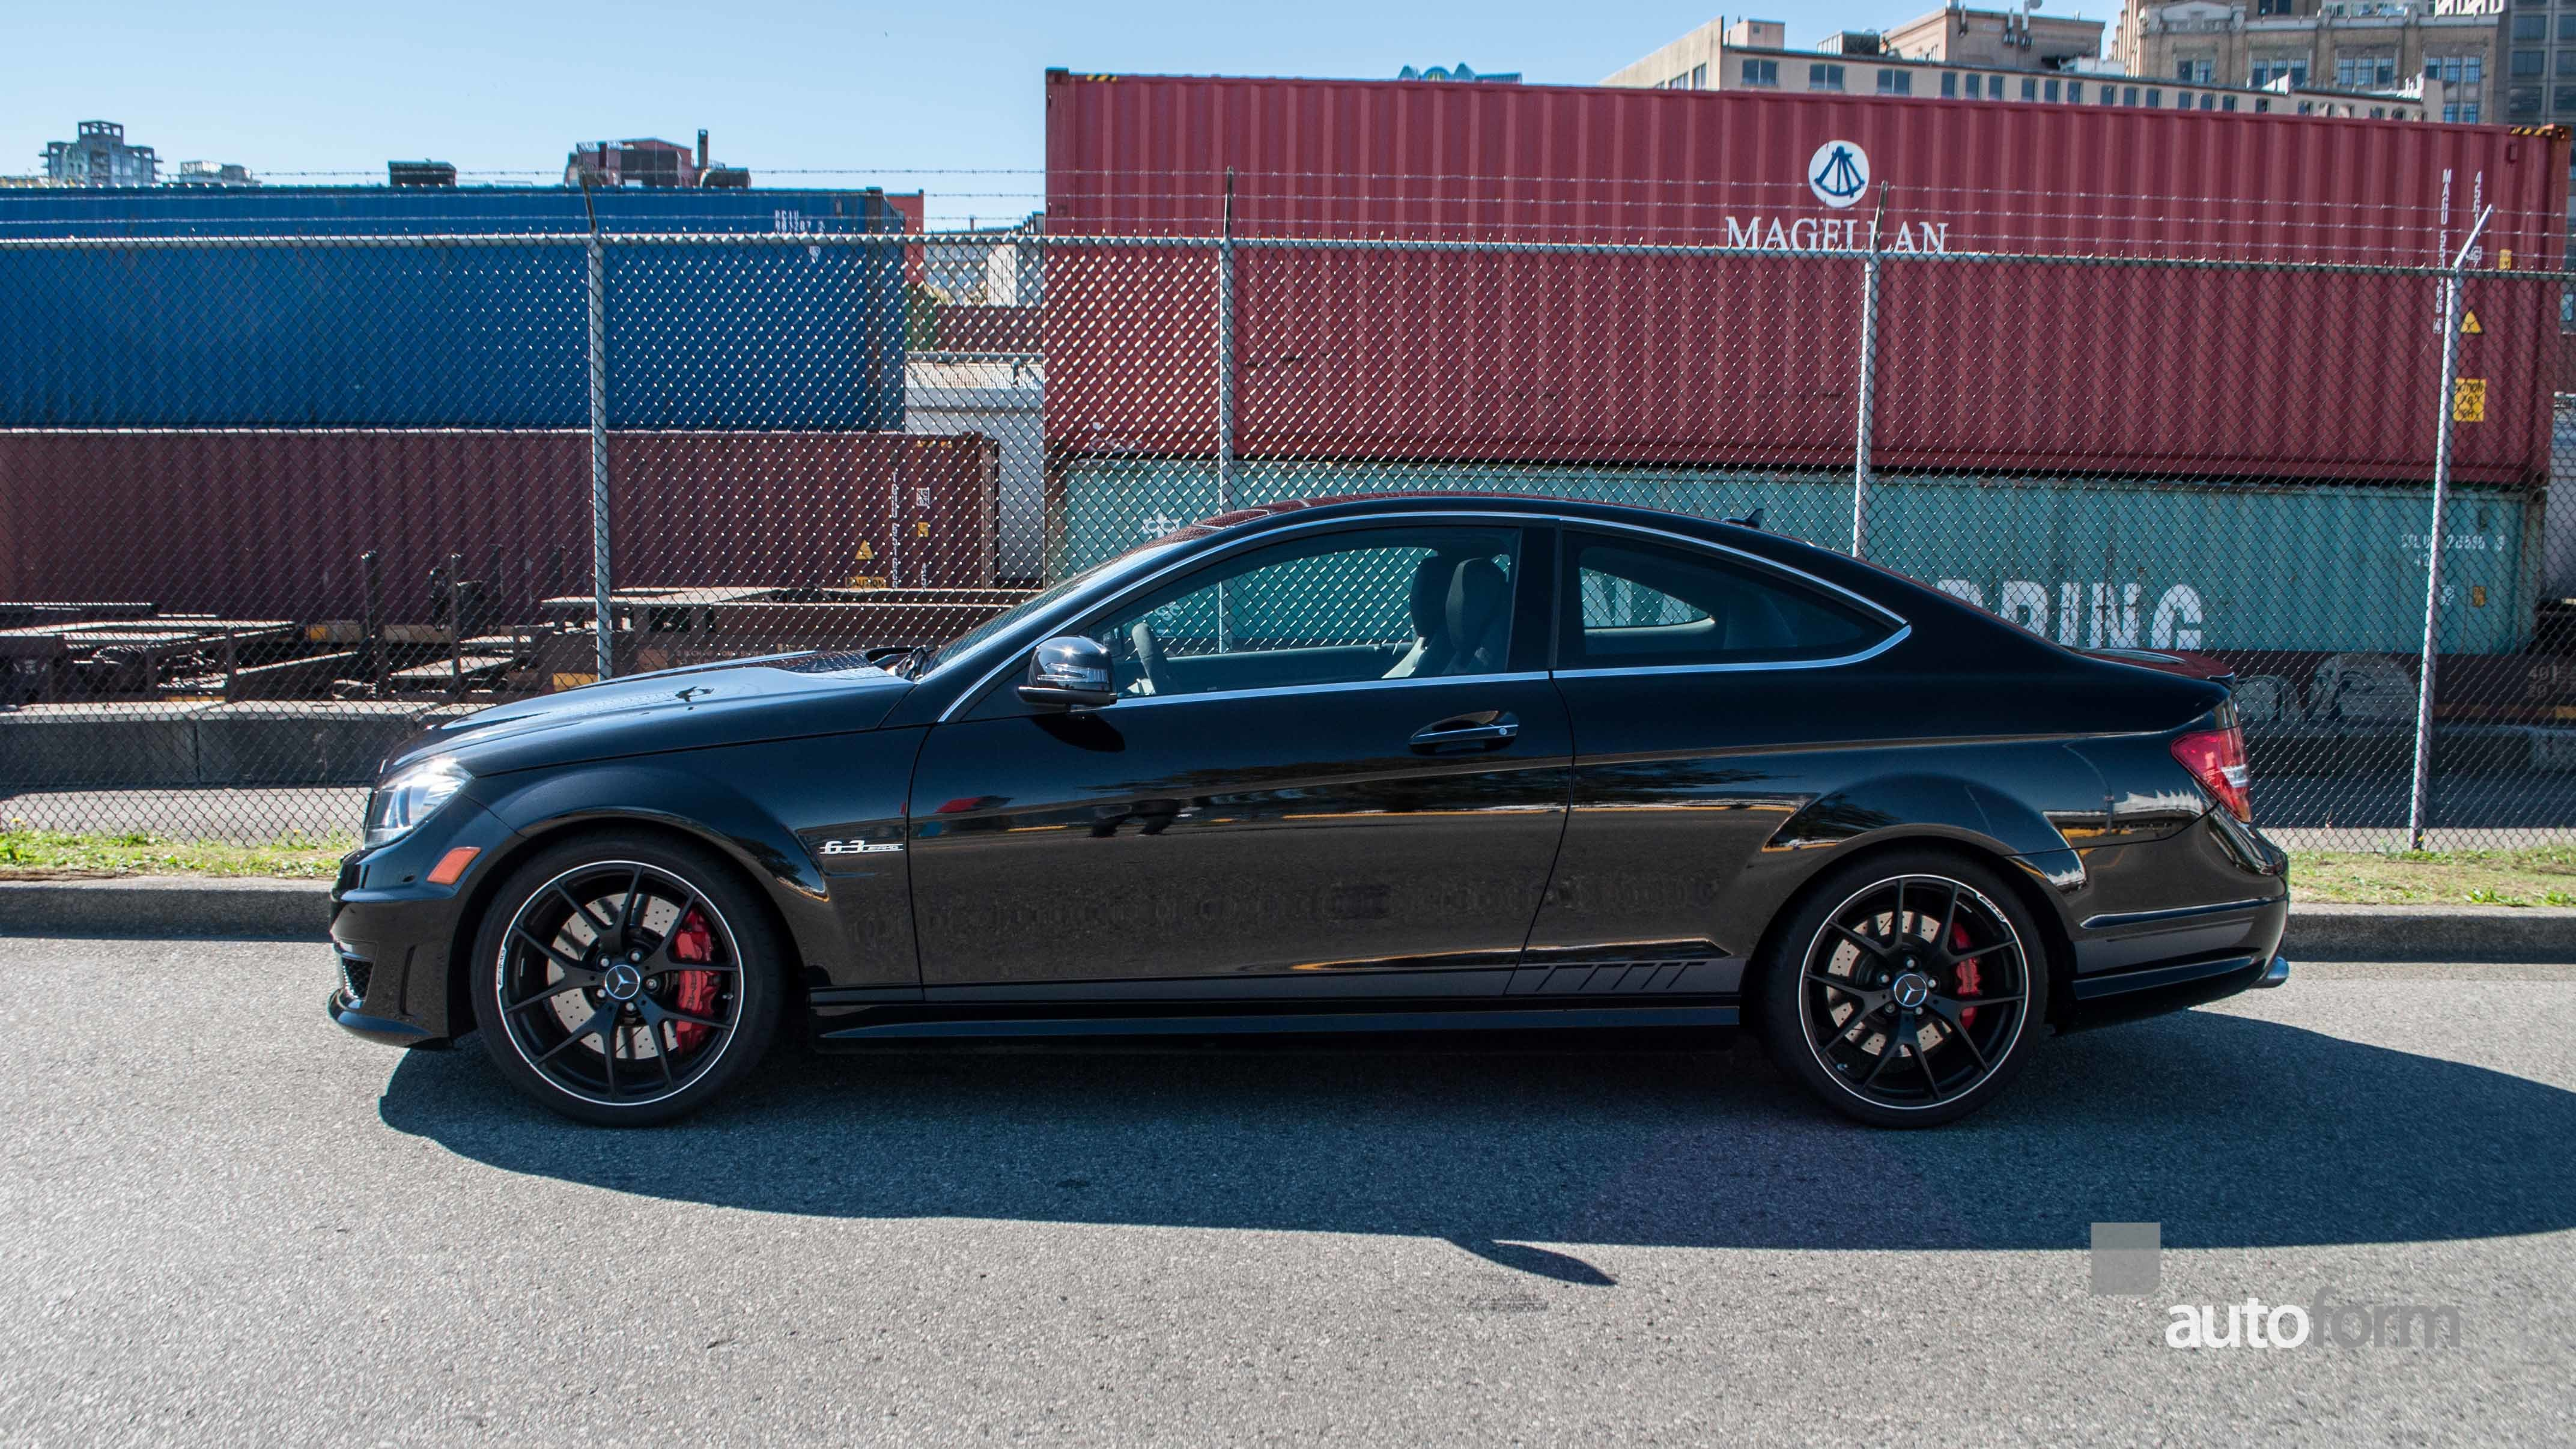 2015 mercedes benz c63 amg 507 edition autoform for Mercedes benz c63 amg black edition